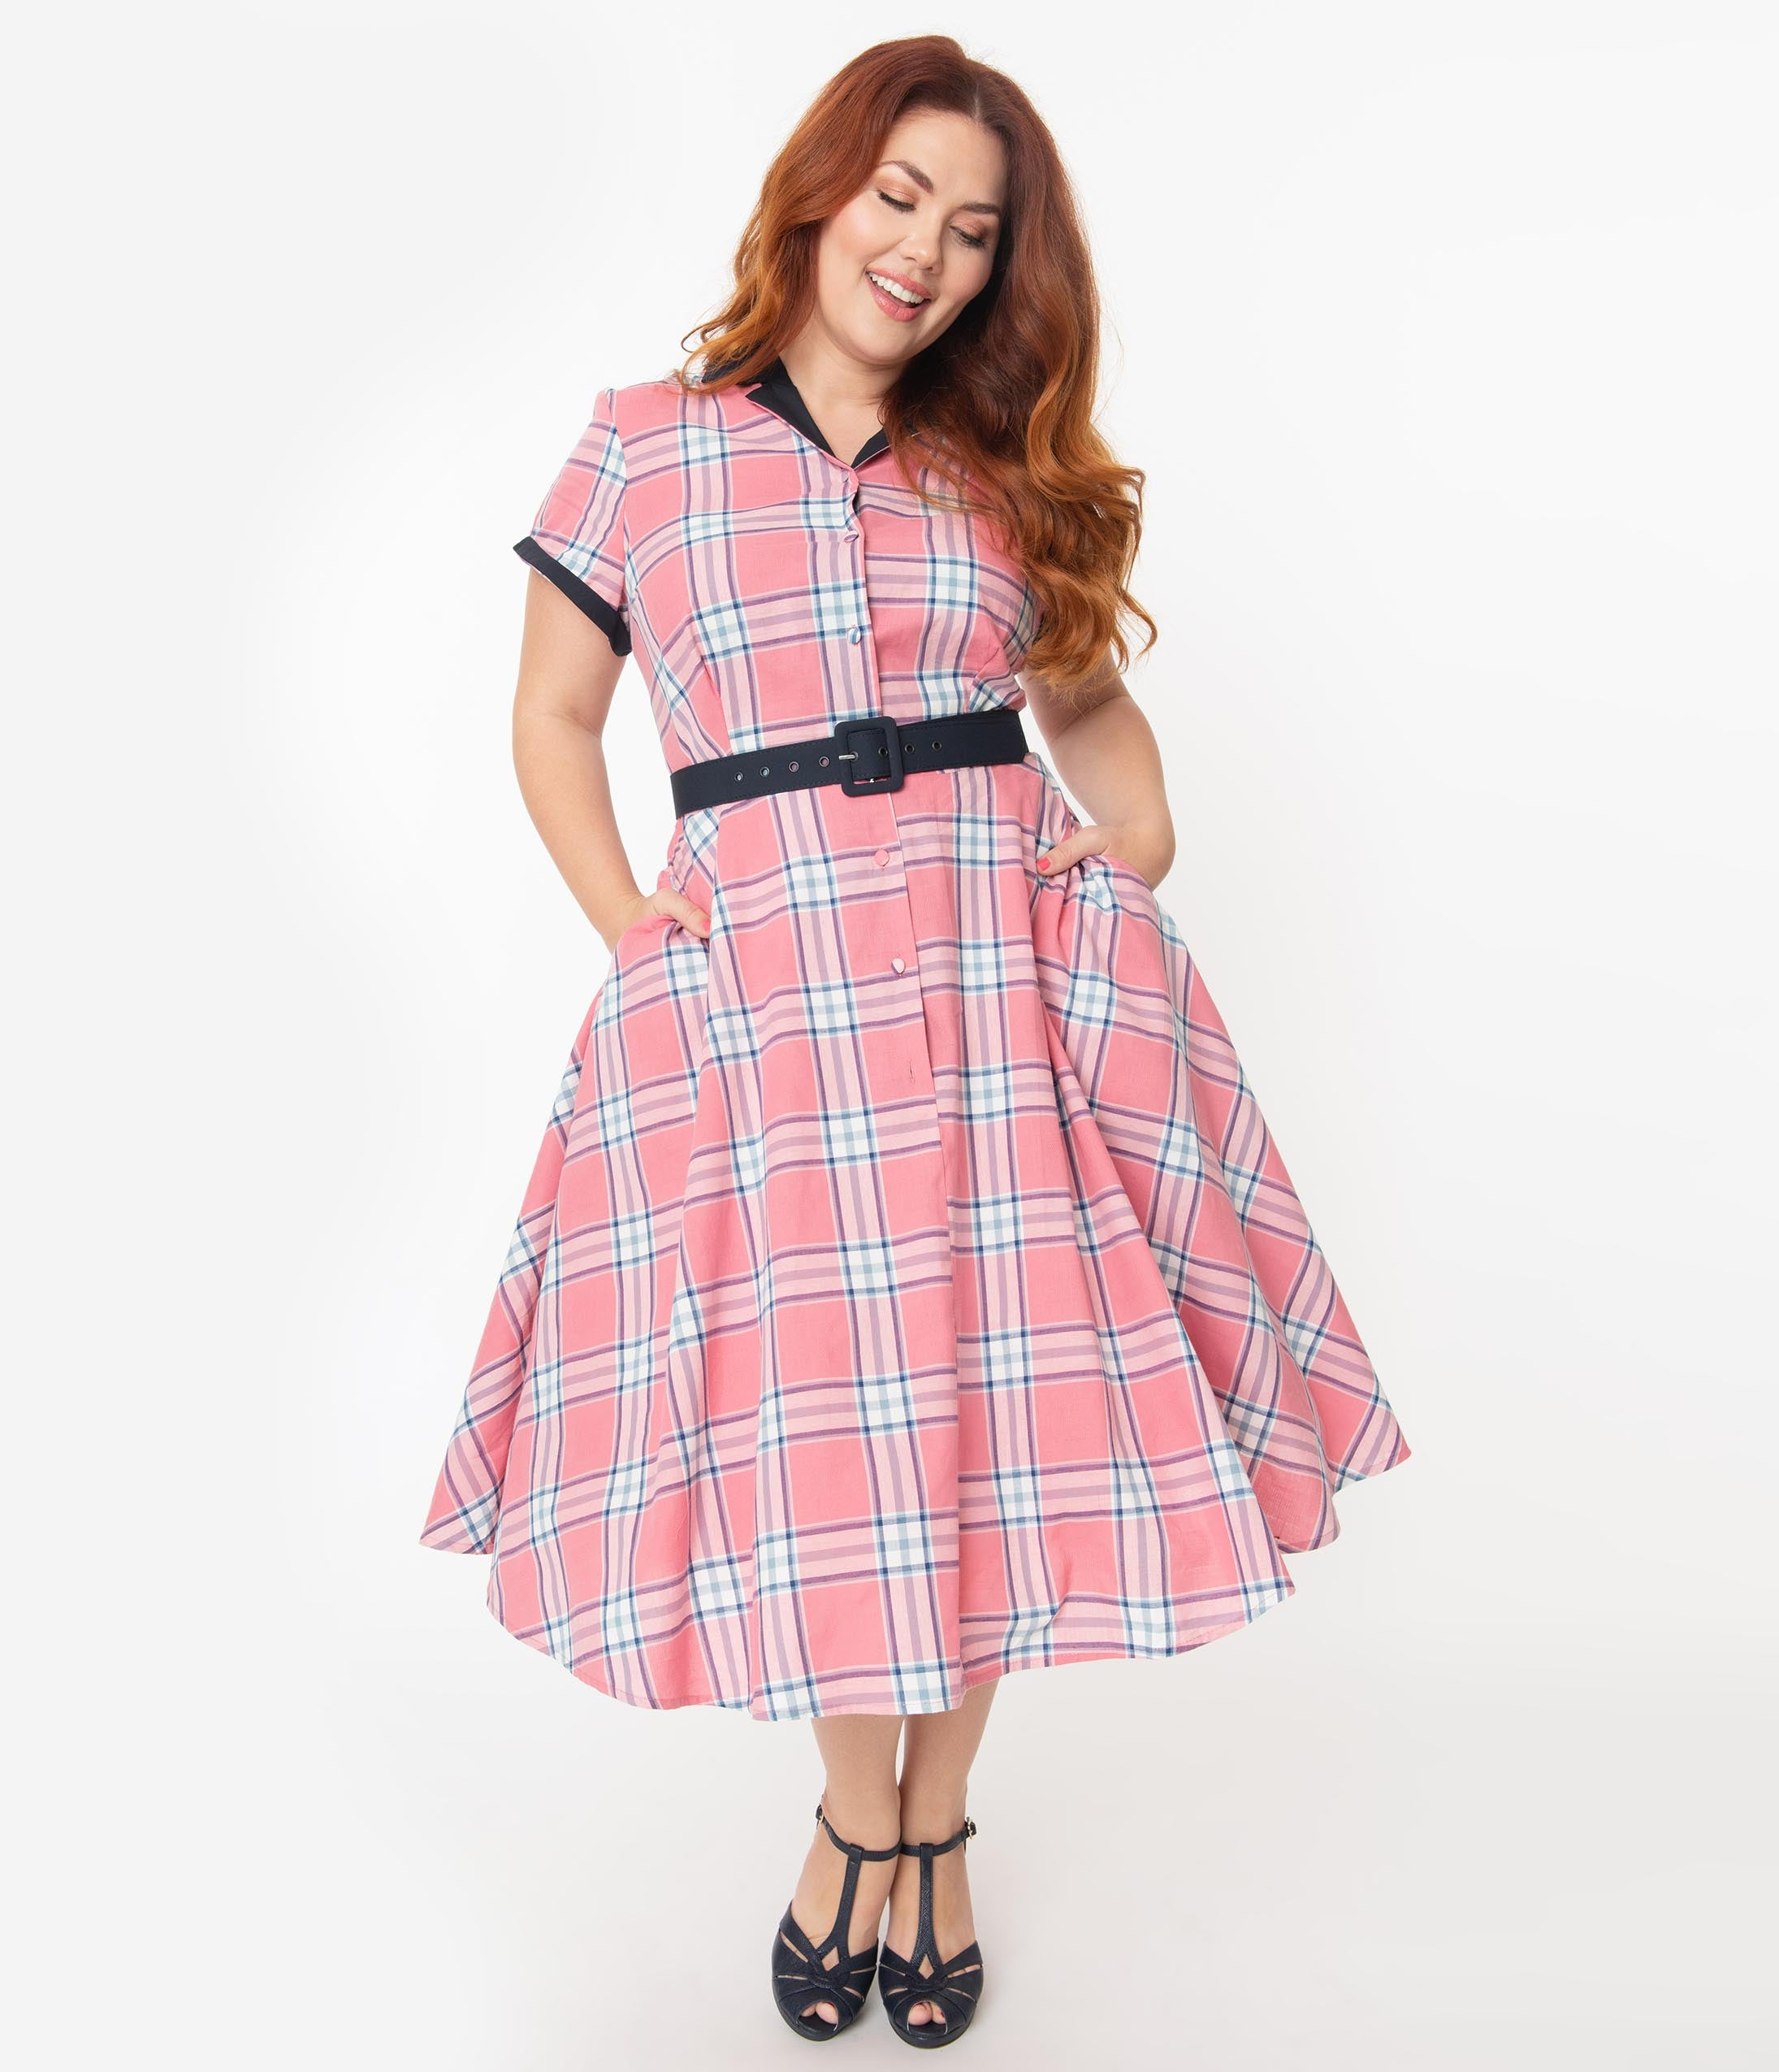 1950s Plus Size Dresses, Swing Dresses Unique Vintage Plus Size 1950S Style Light Pink Plaid Alexis Swing Dress $88.00 AT vintagedancer.com